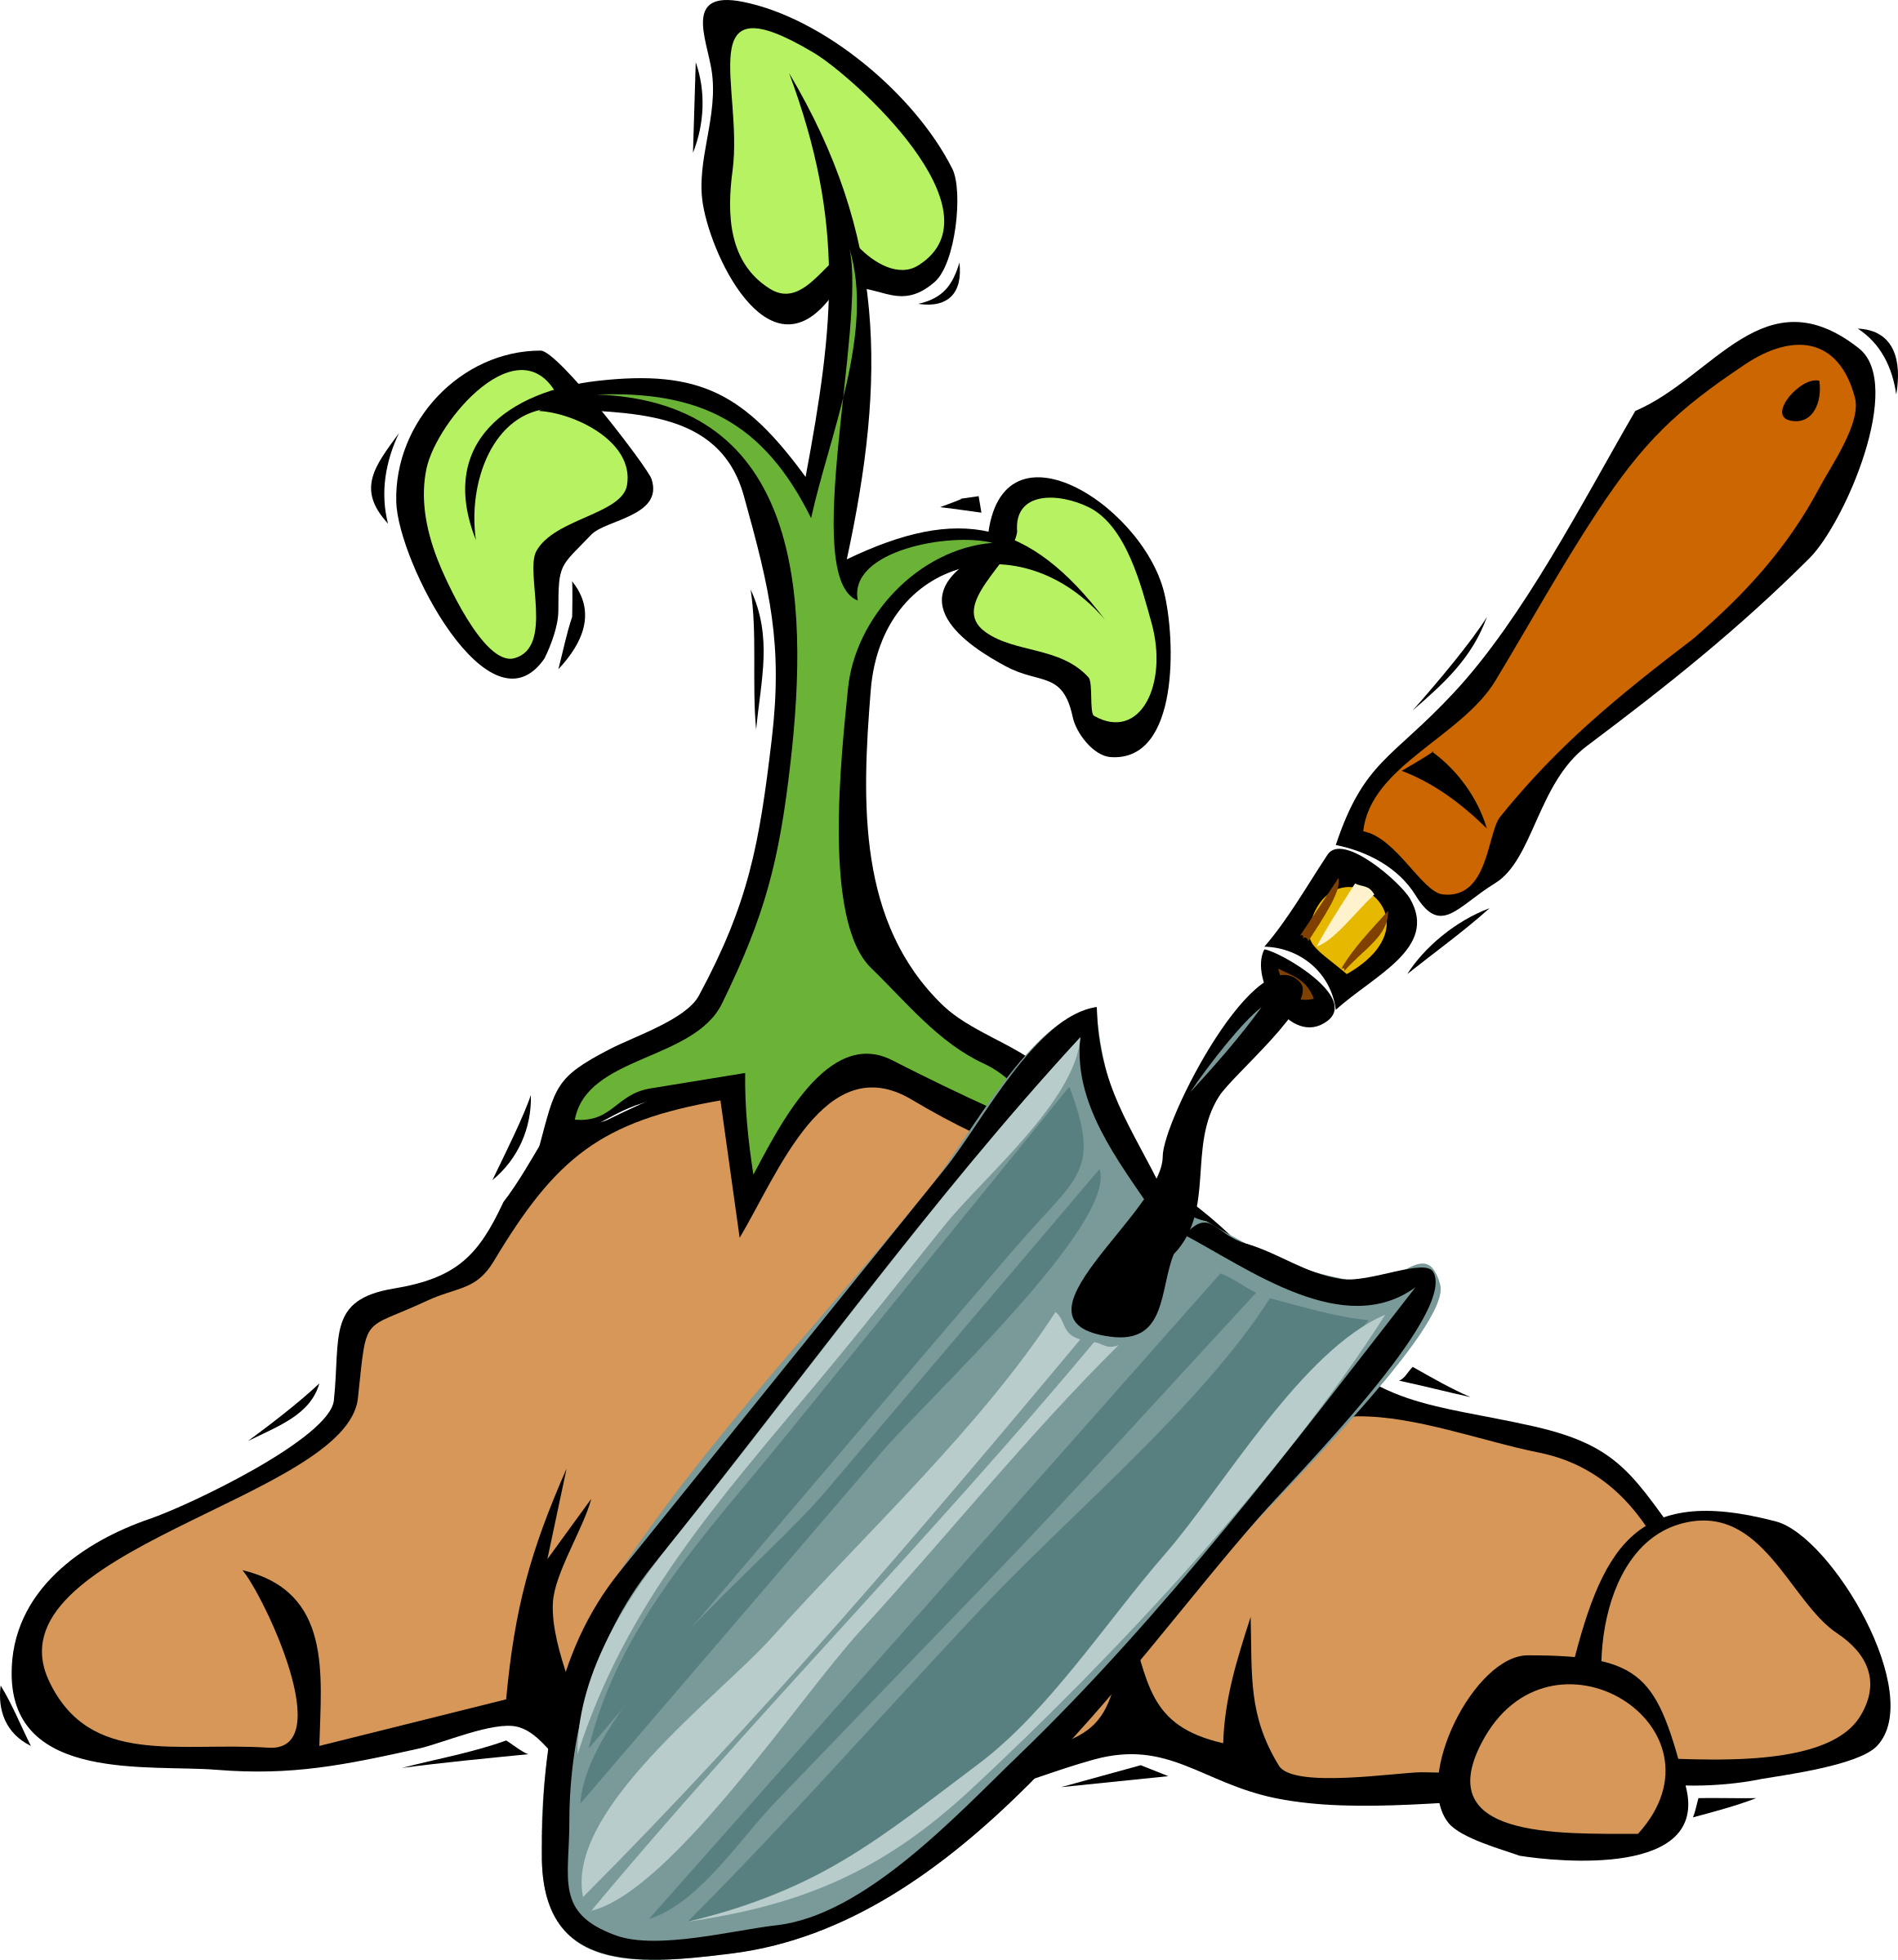 Free Animated Garden Cliparts, Download Free Clip Art, Free Clip Art.